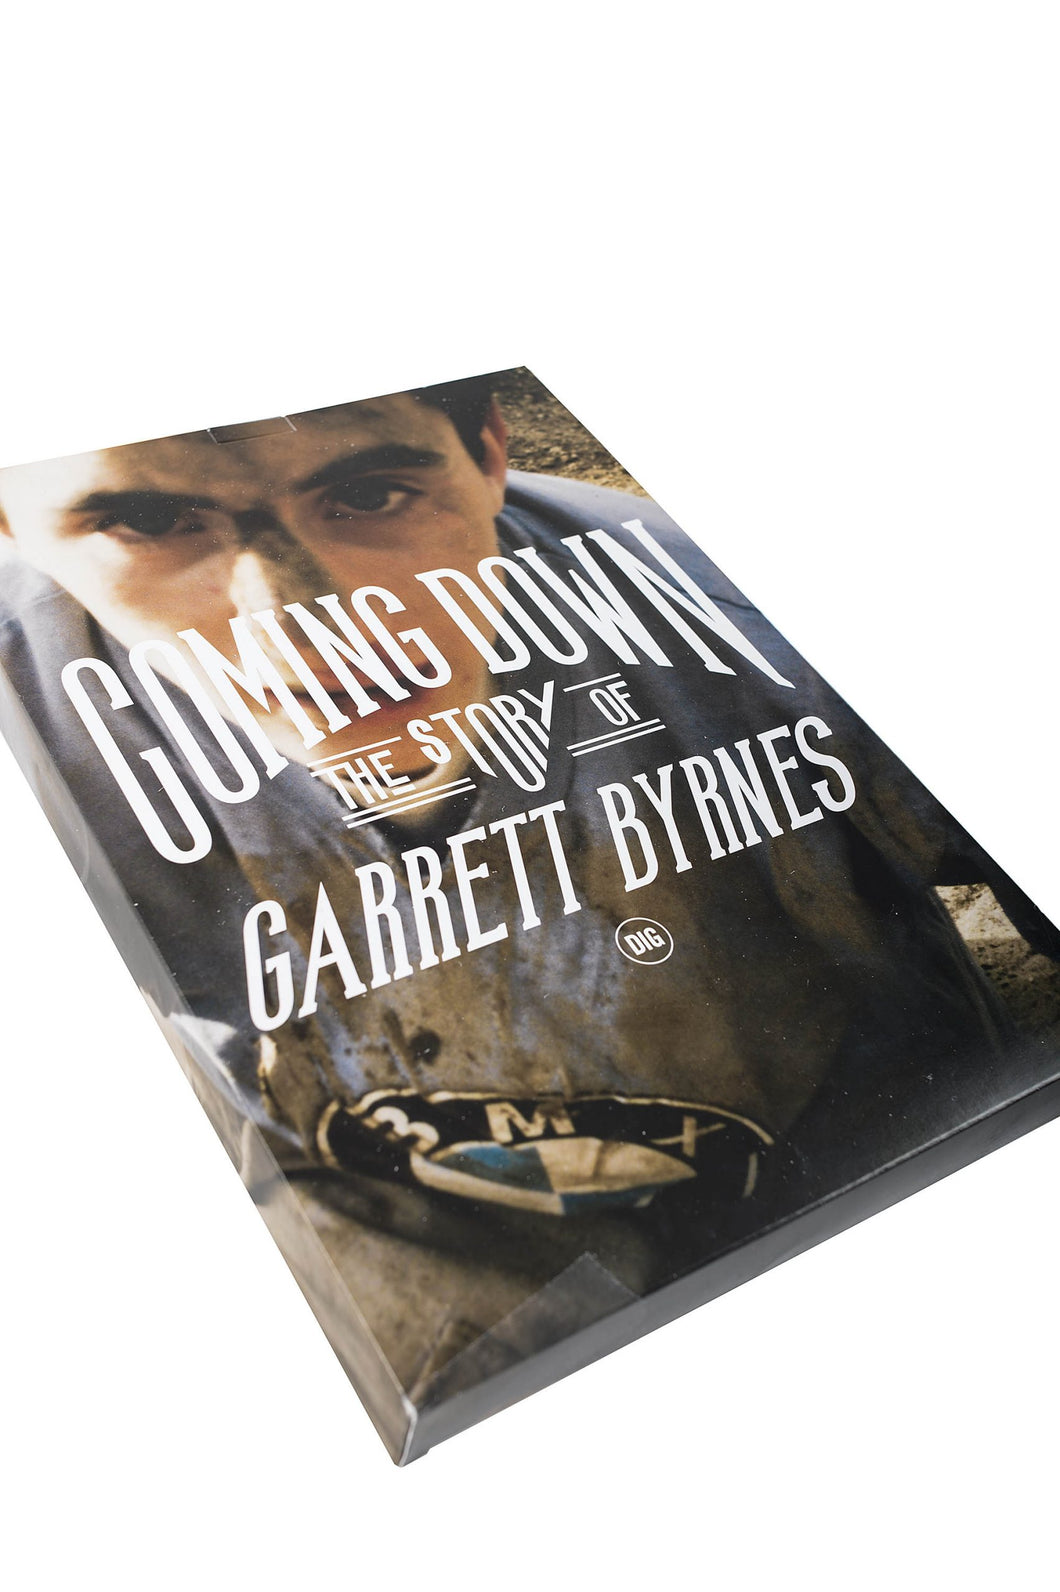 Garrett Byrnes 'Coming Down' Limited Edition DVD Collectors Box Set. DIG Issue 99.6